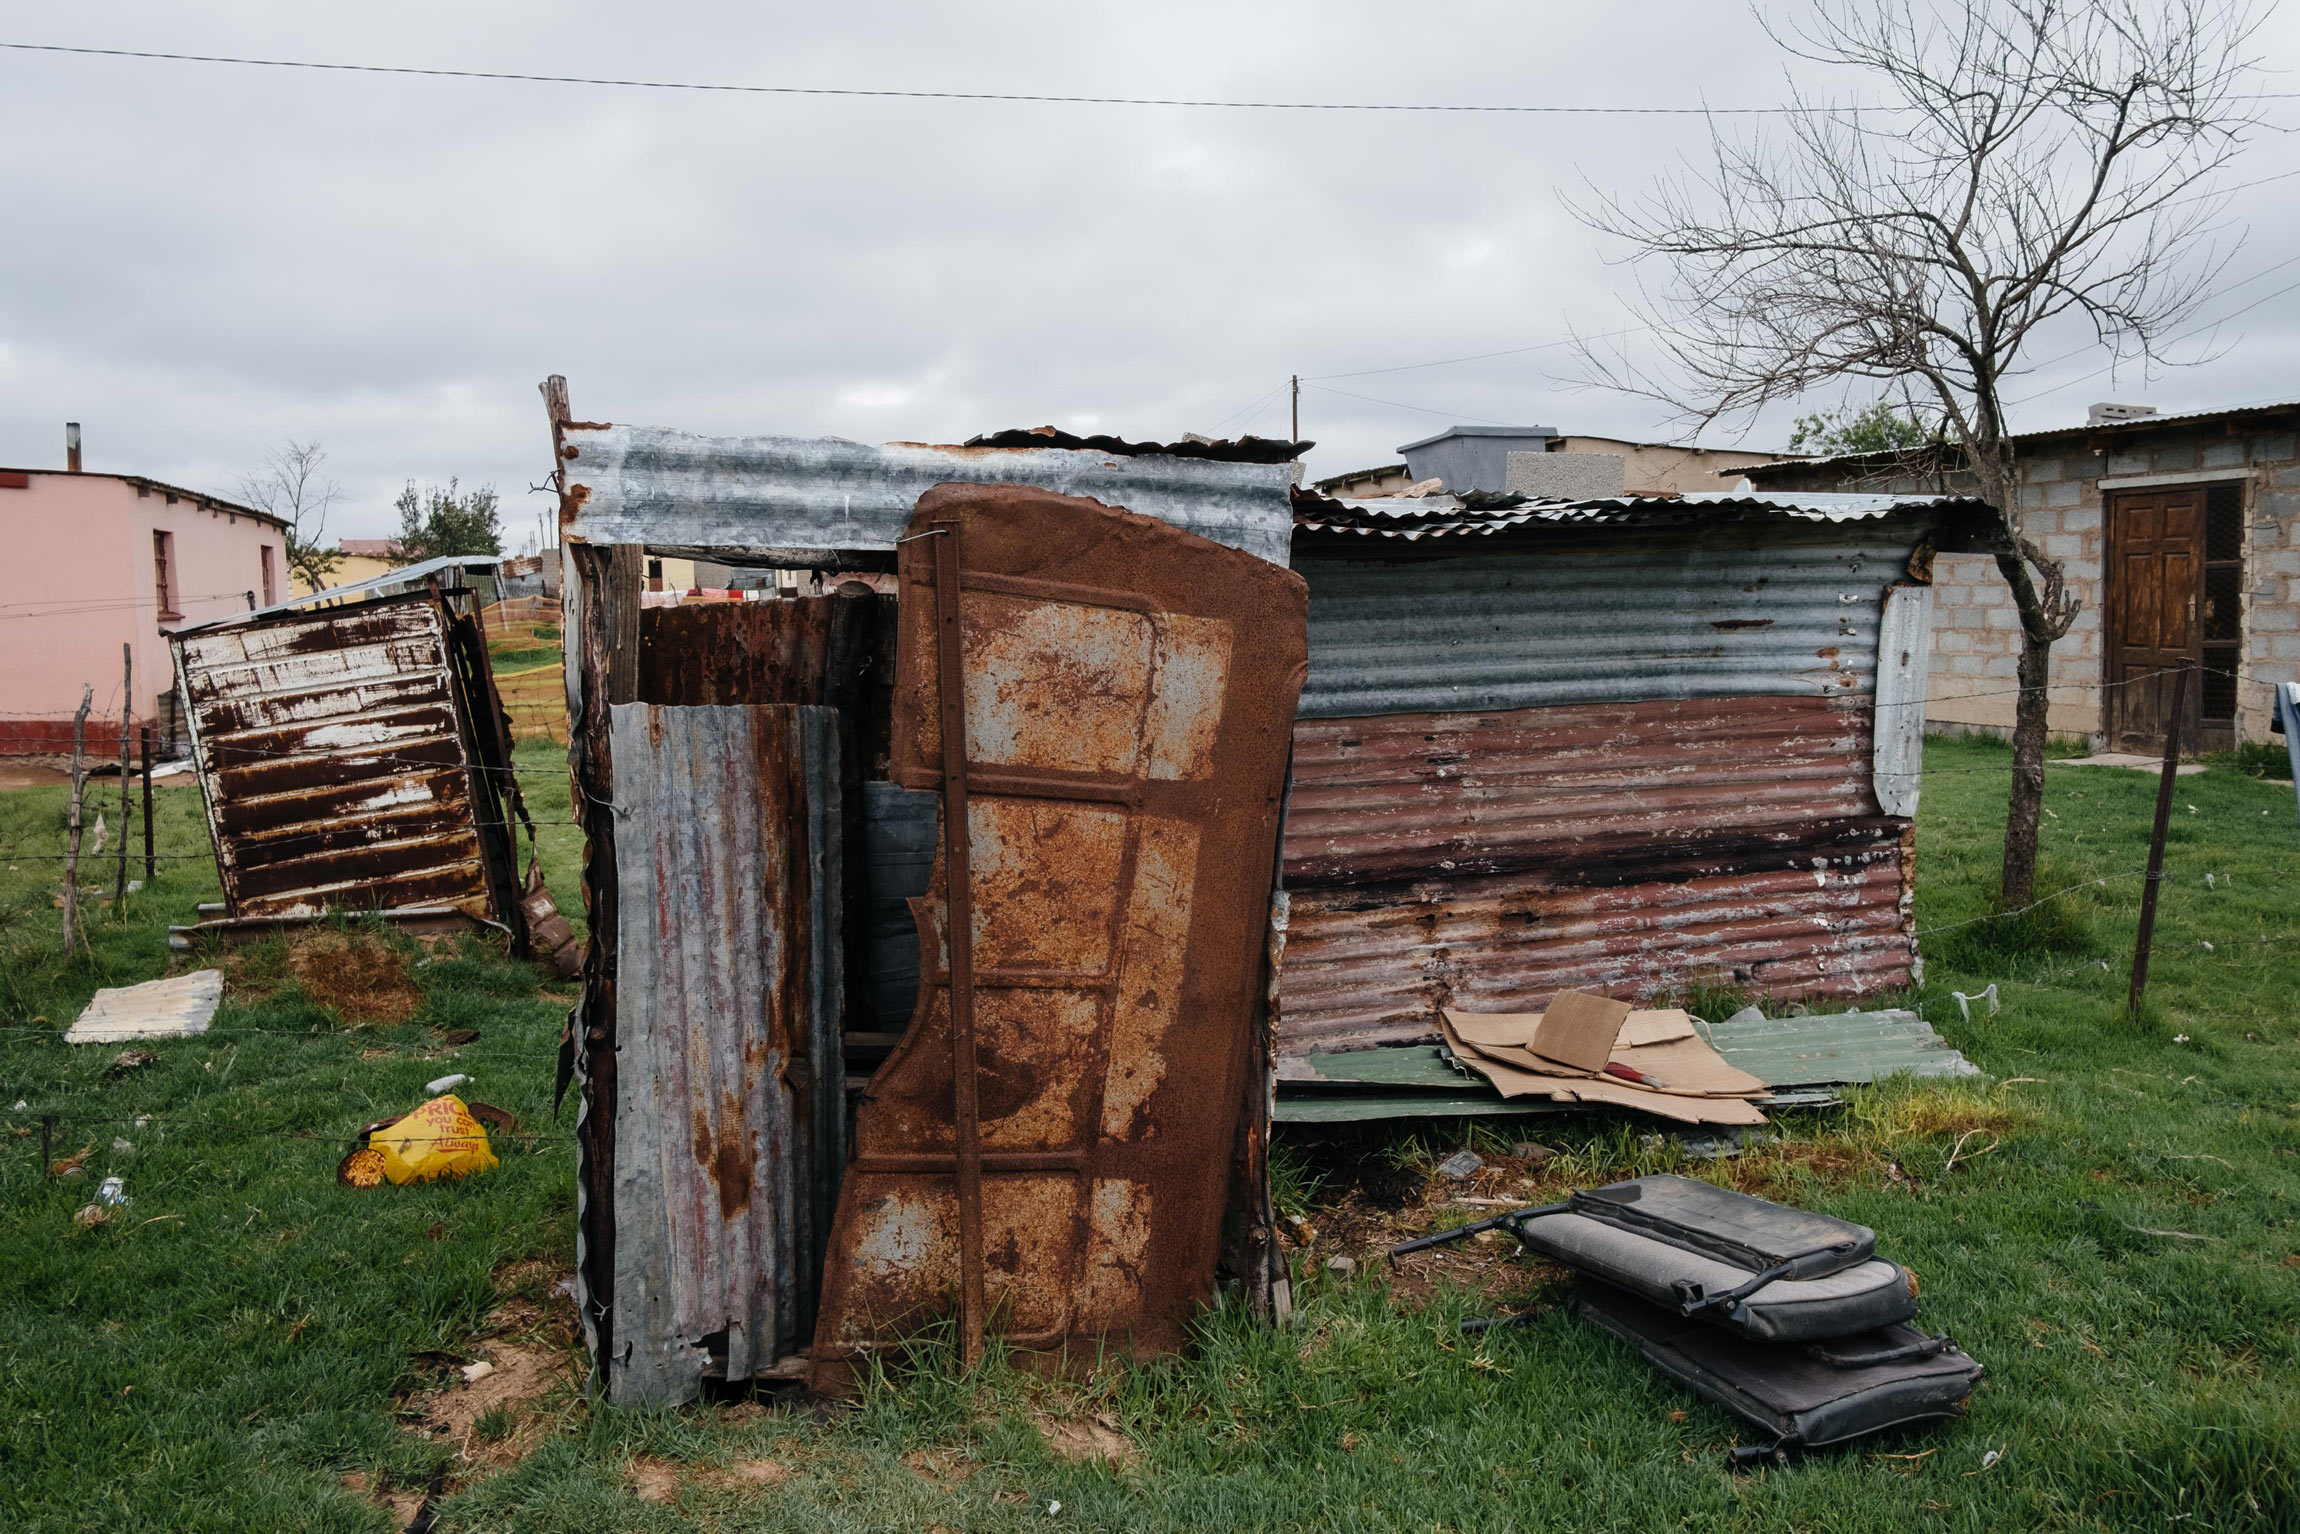 10 December 2019: A makeshift pit latrine in the back yard of Nolinette Nqoko's house in Vergenoeg Township, Elliot, Eastern Cape.